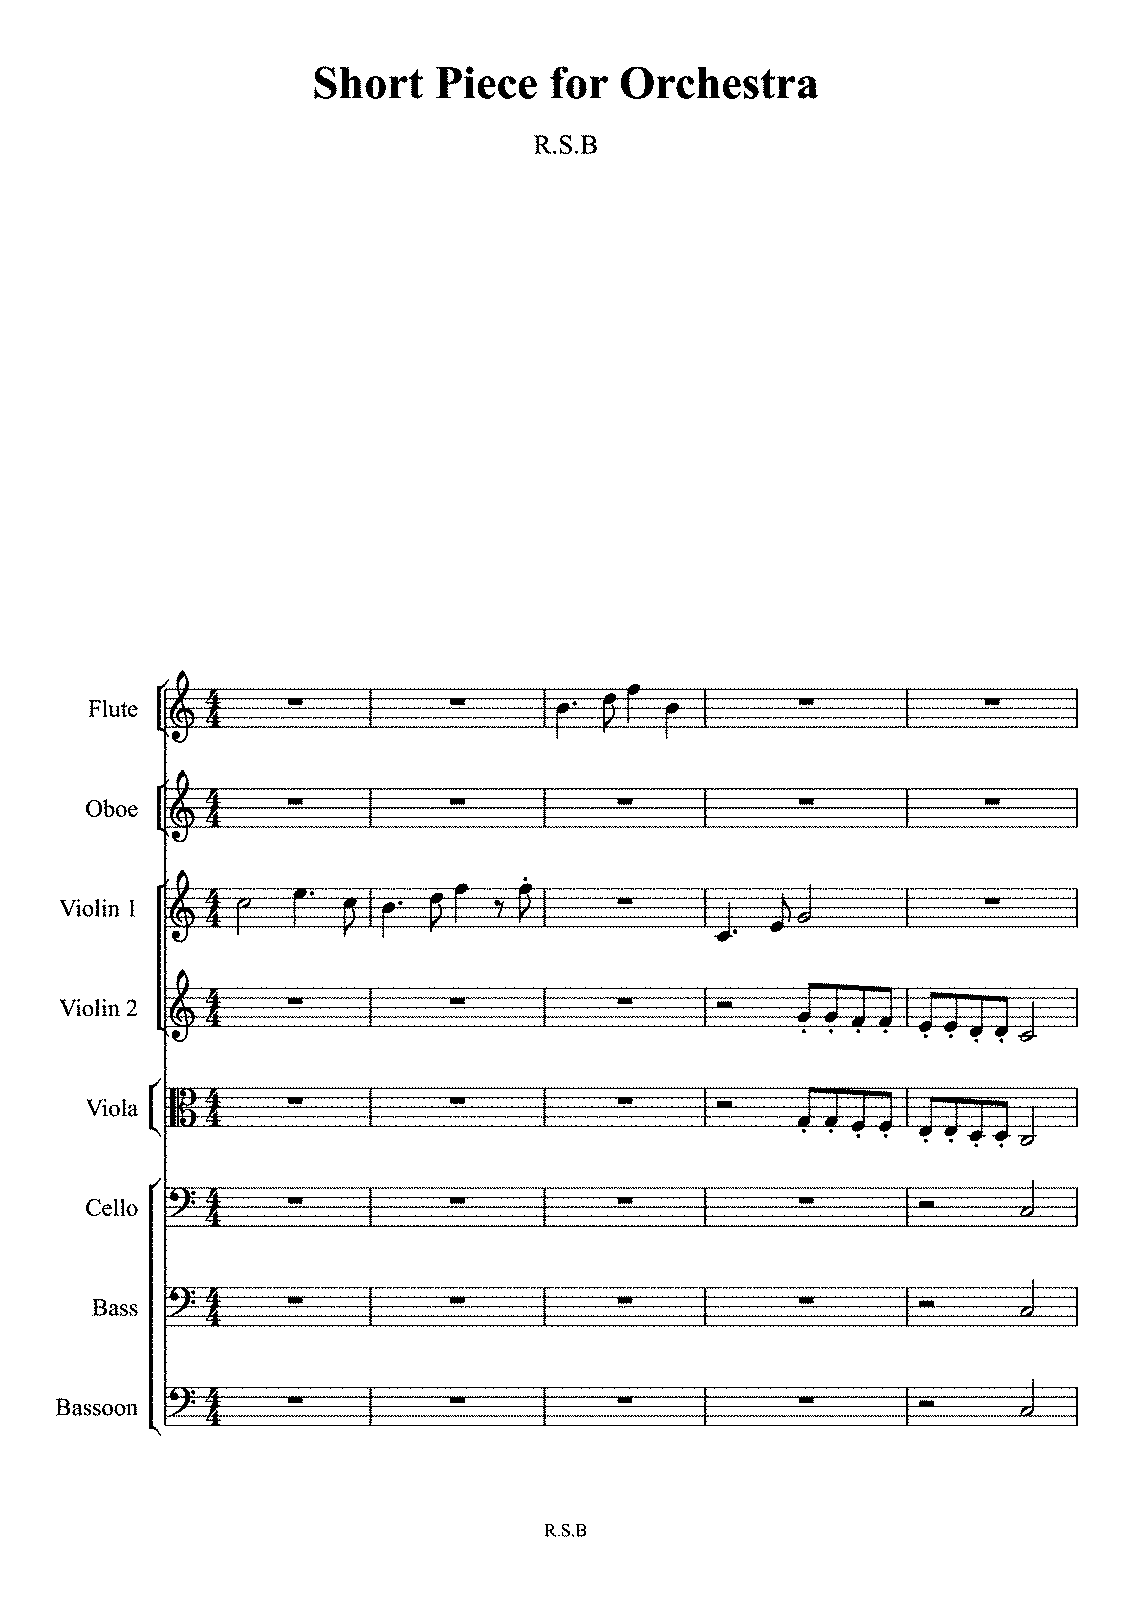 PMLP207203-Short Piece for Orchestra (Complete Score) (RSB).pdf